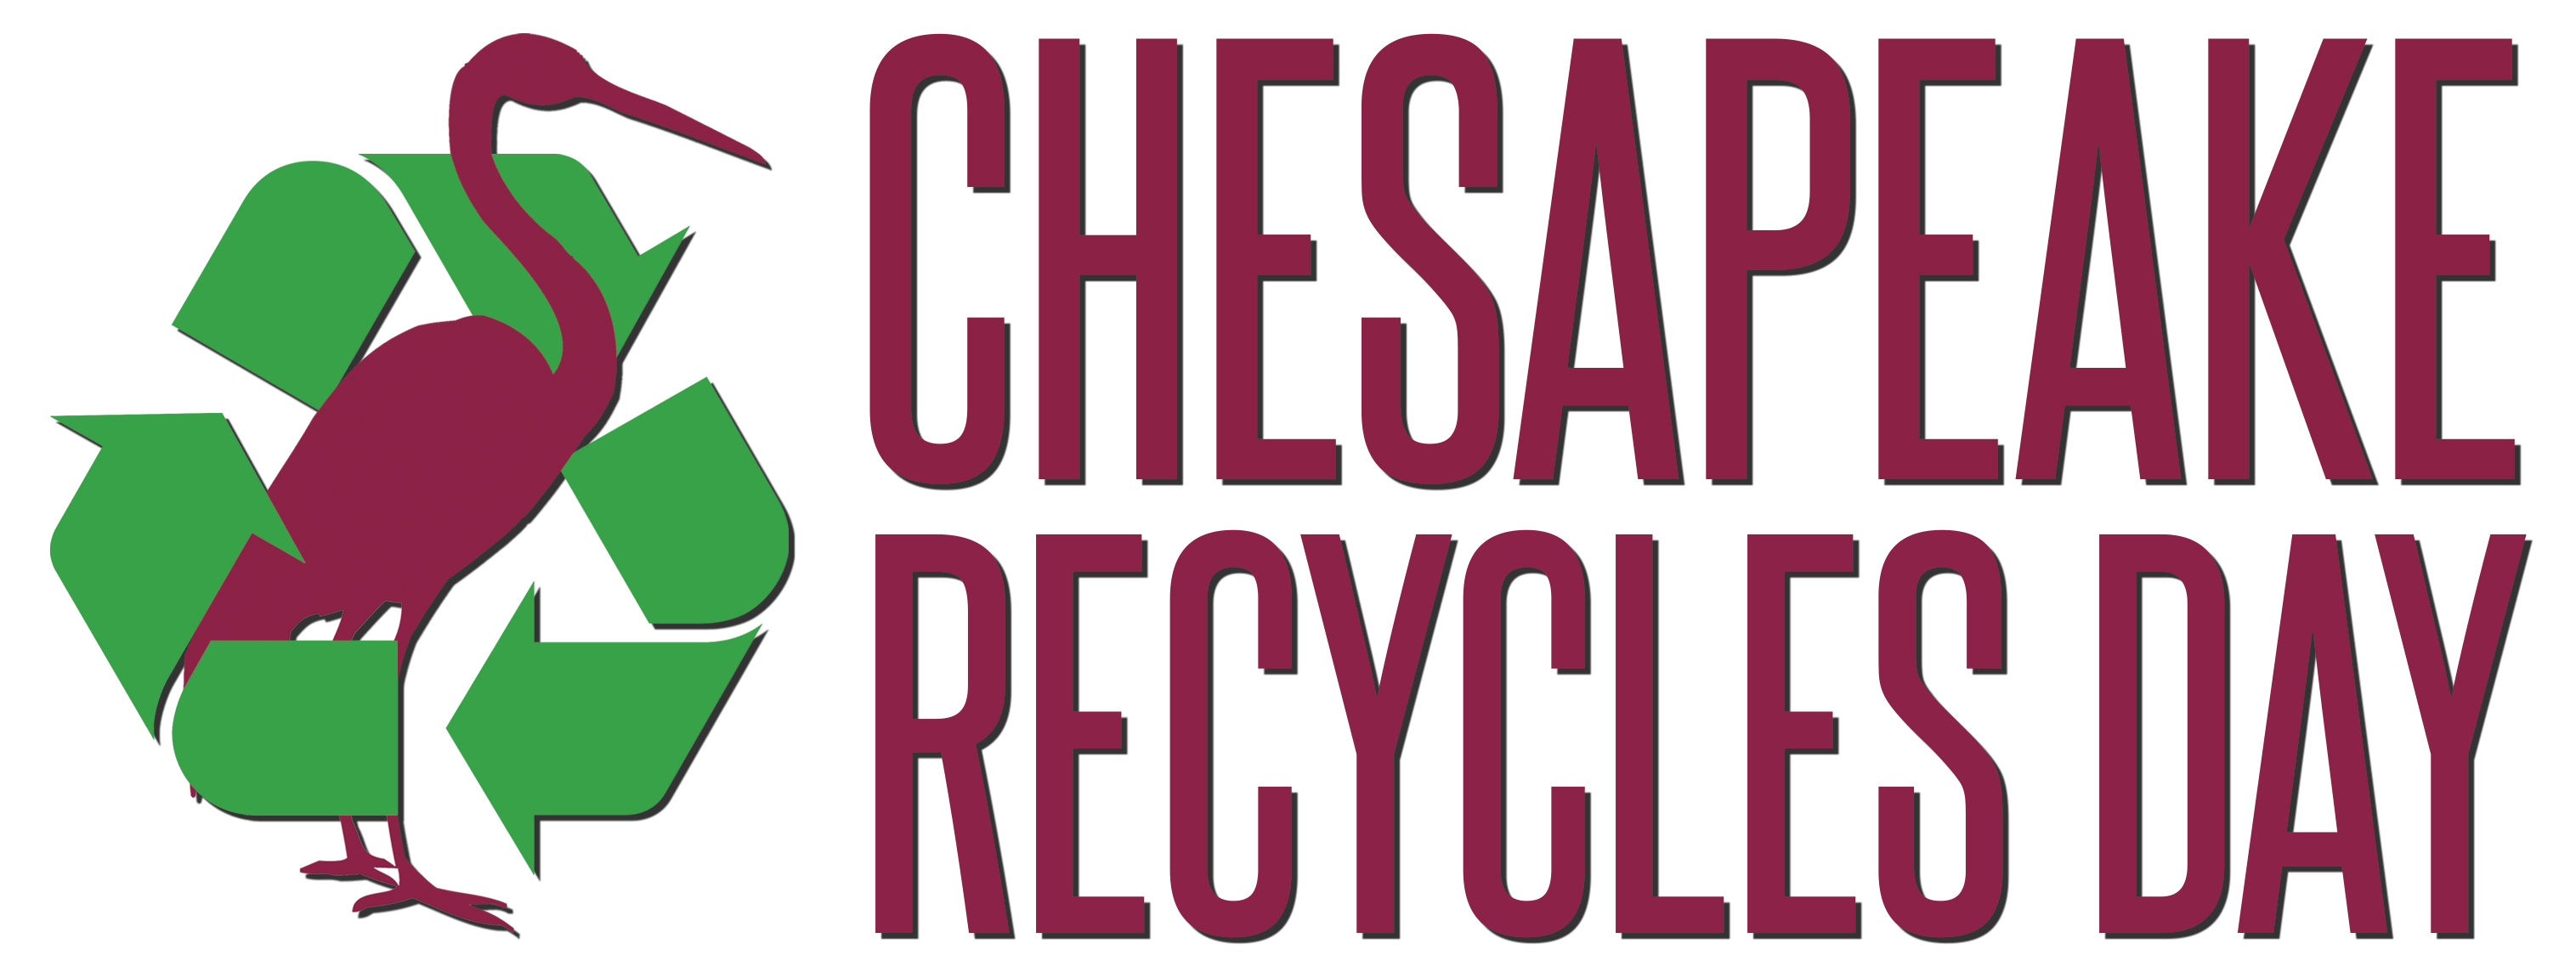 Chesapeake Recycles Day Logo Block